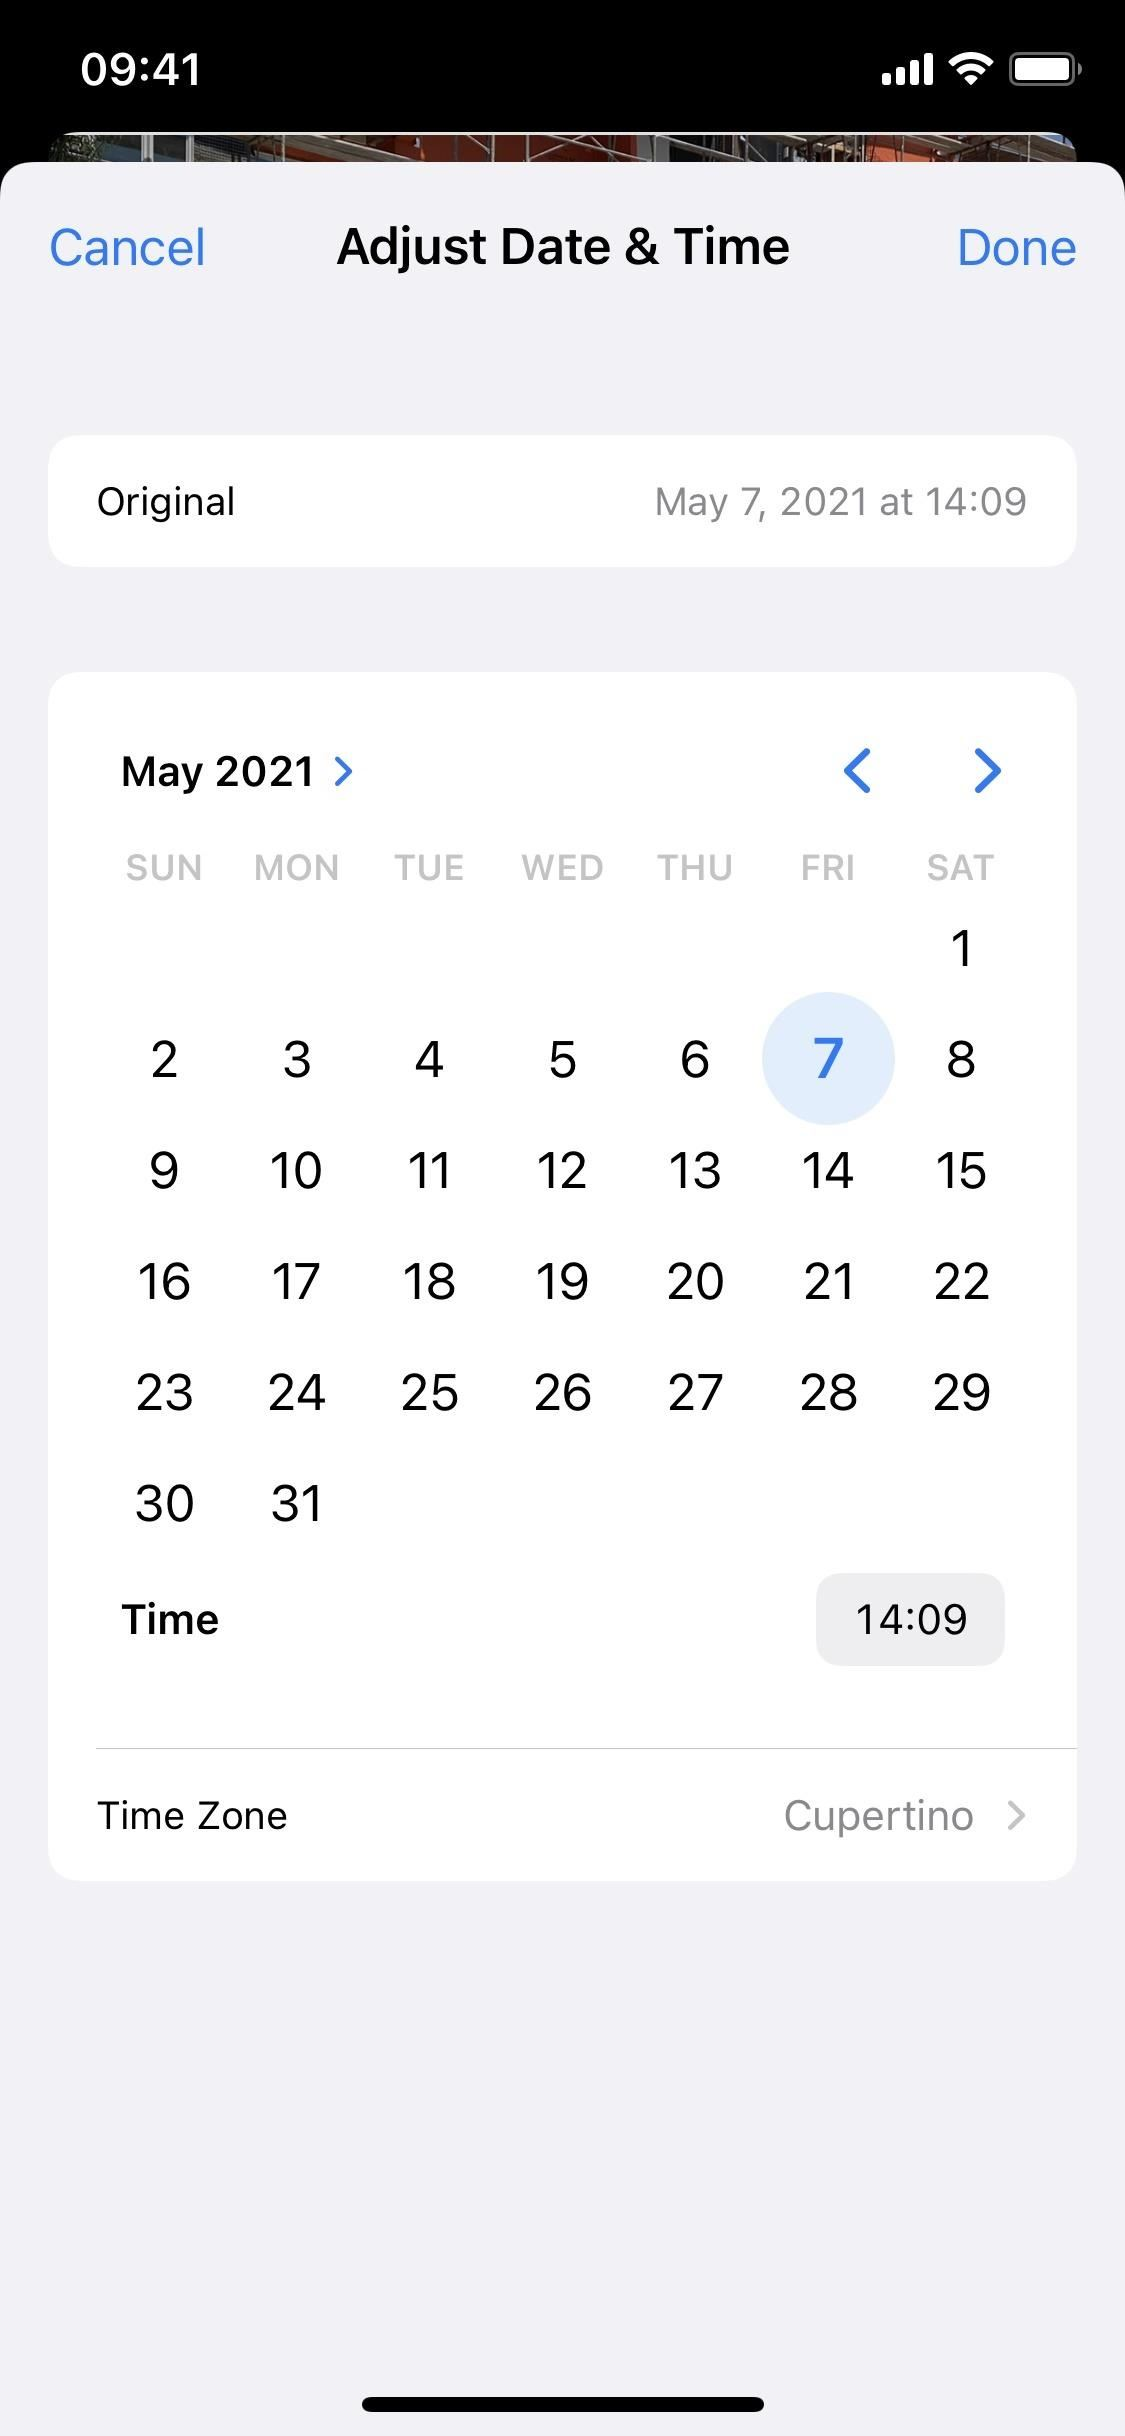 iOS 15 Makes It Really Easy to Change the Location & Date/Time for Any Photo or Video